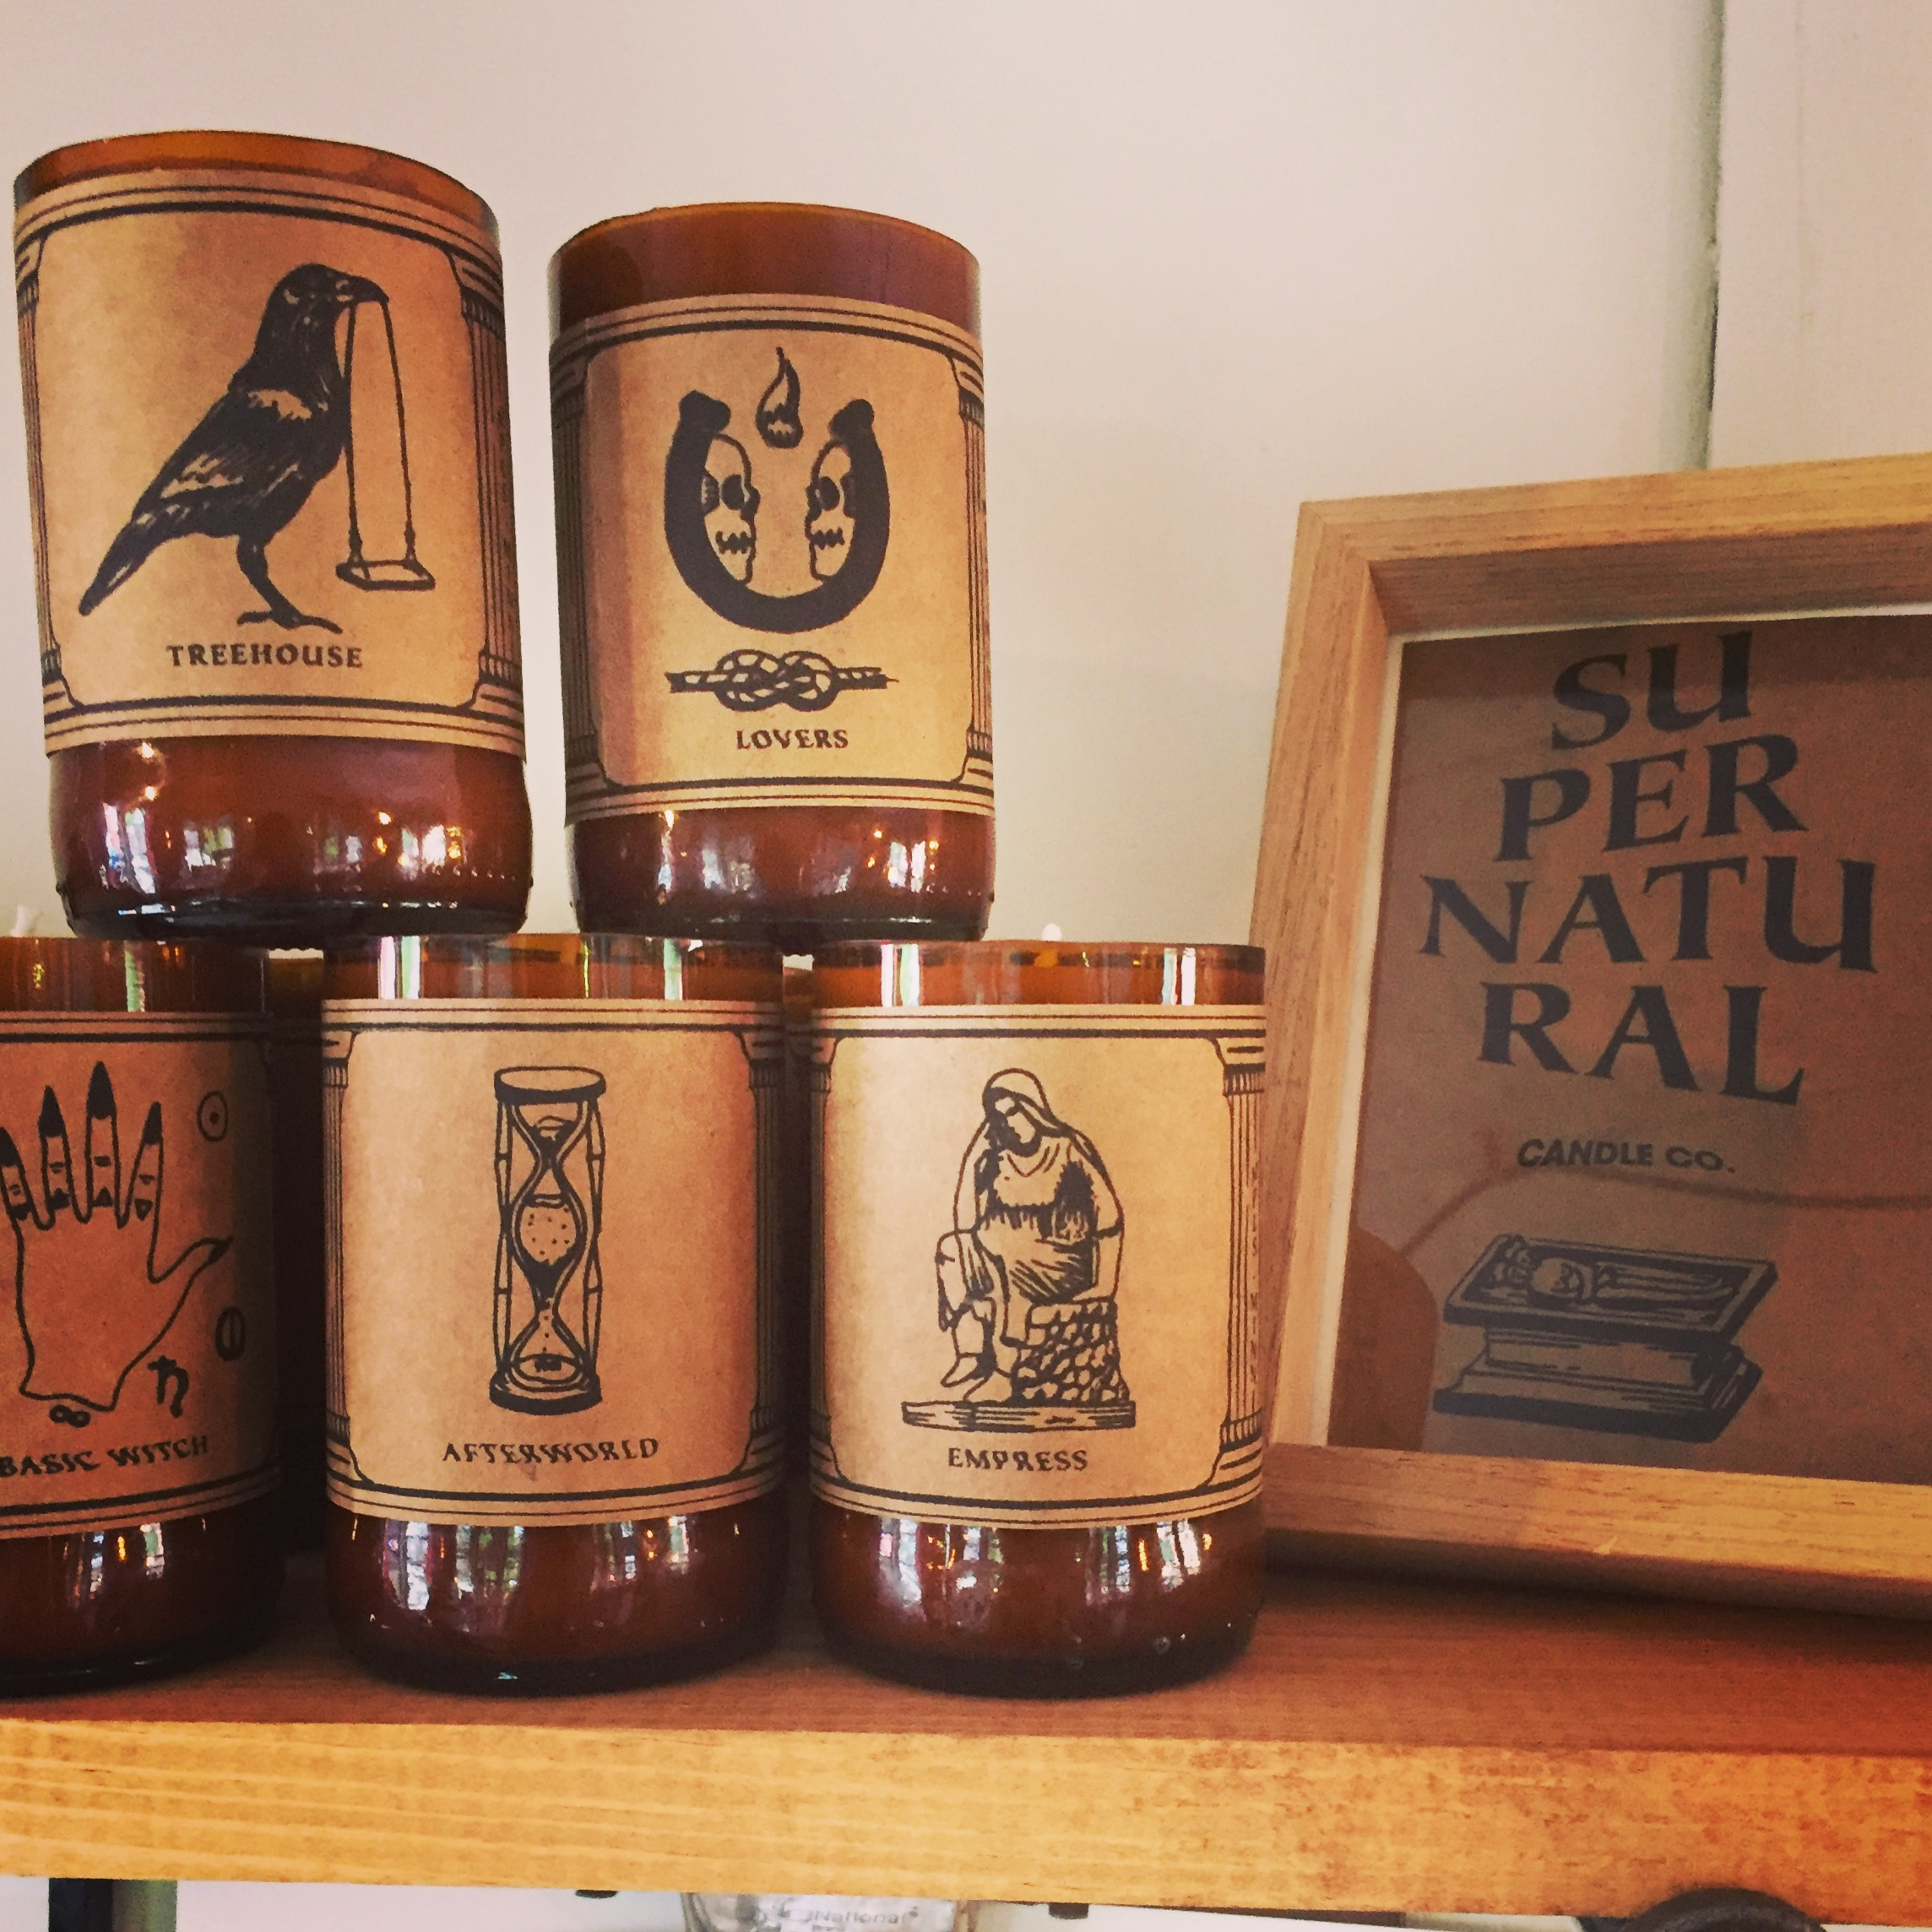 SuperNatural Candle Co.